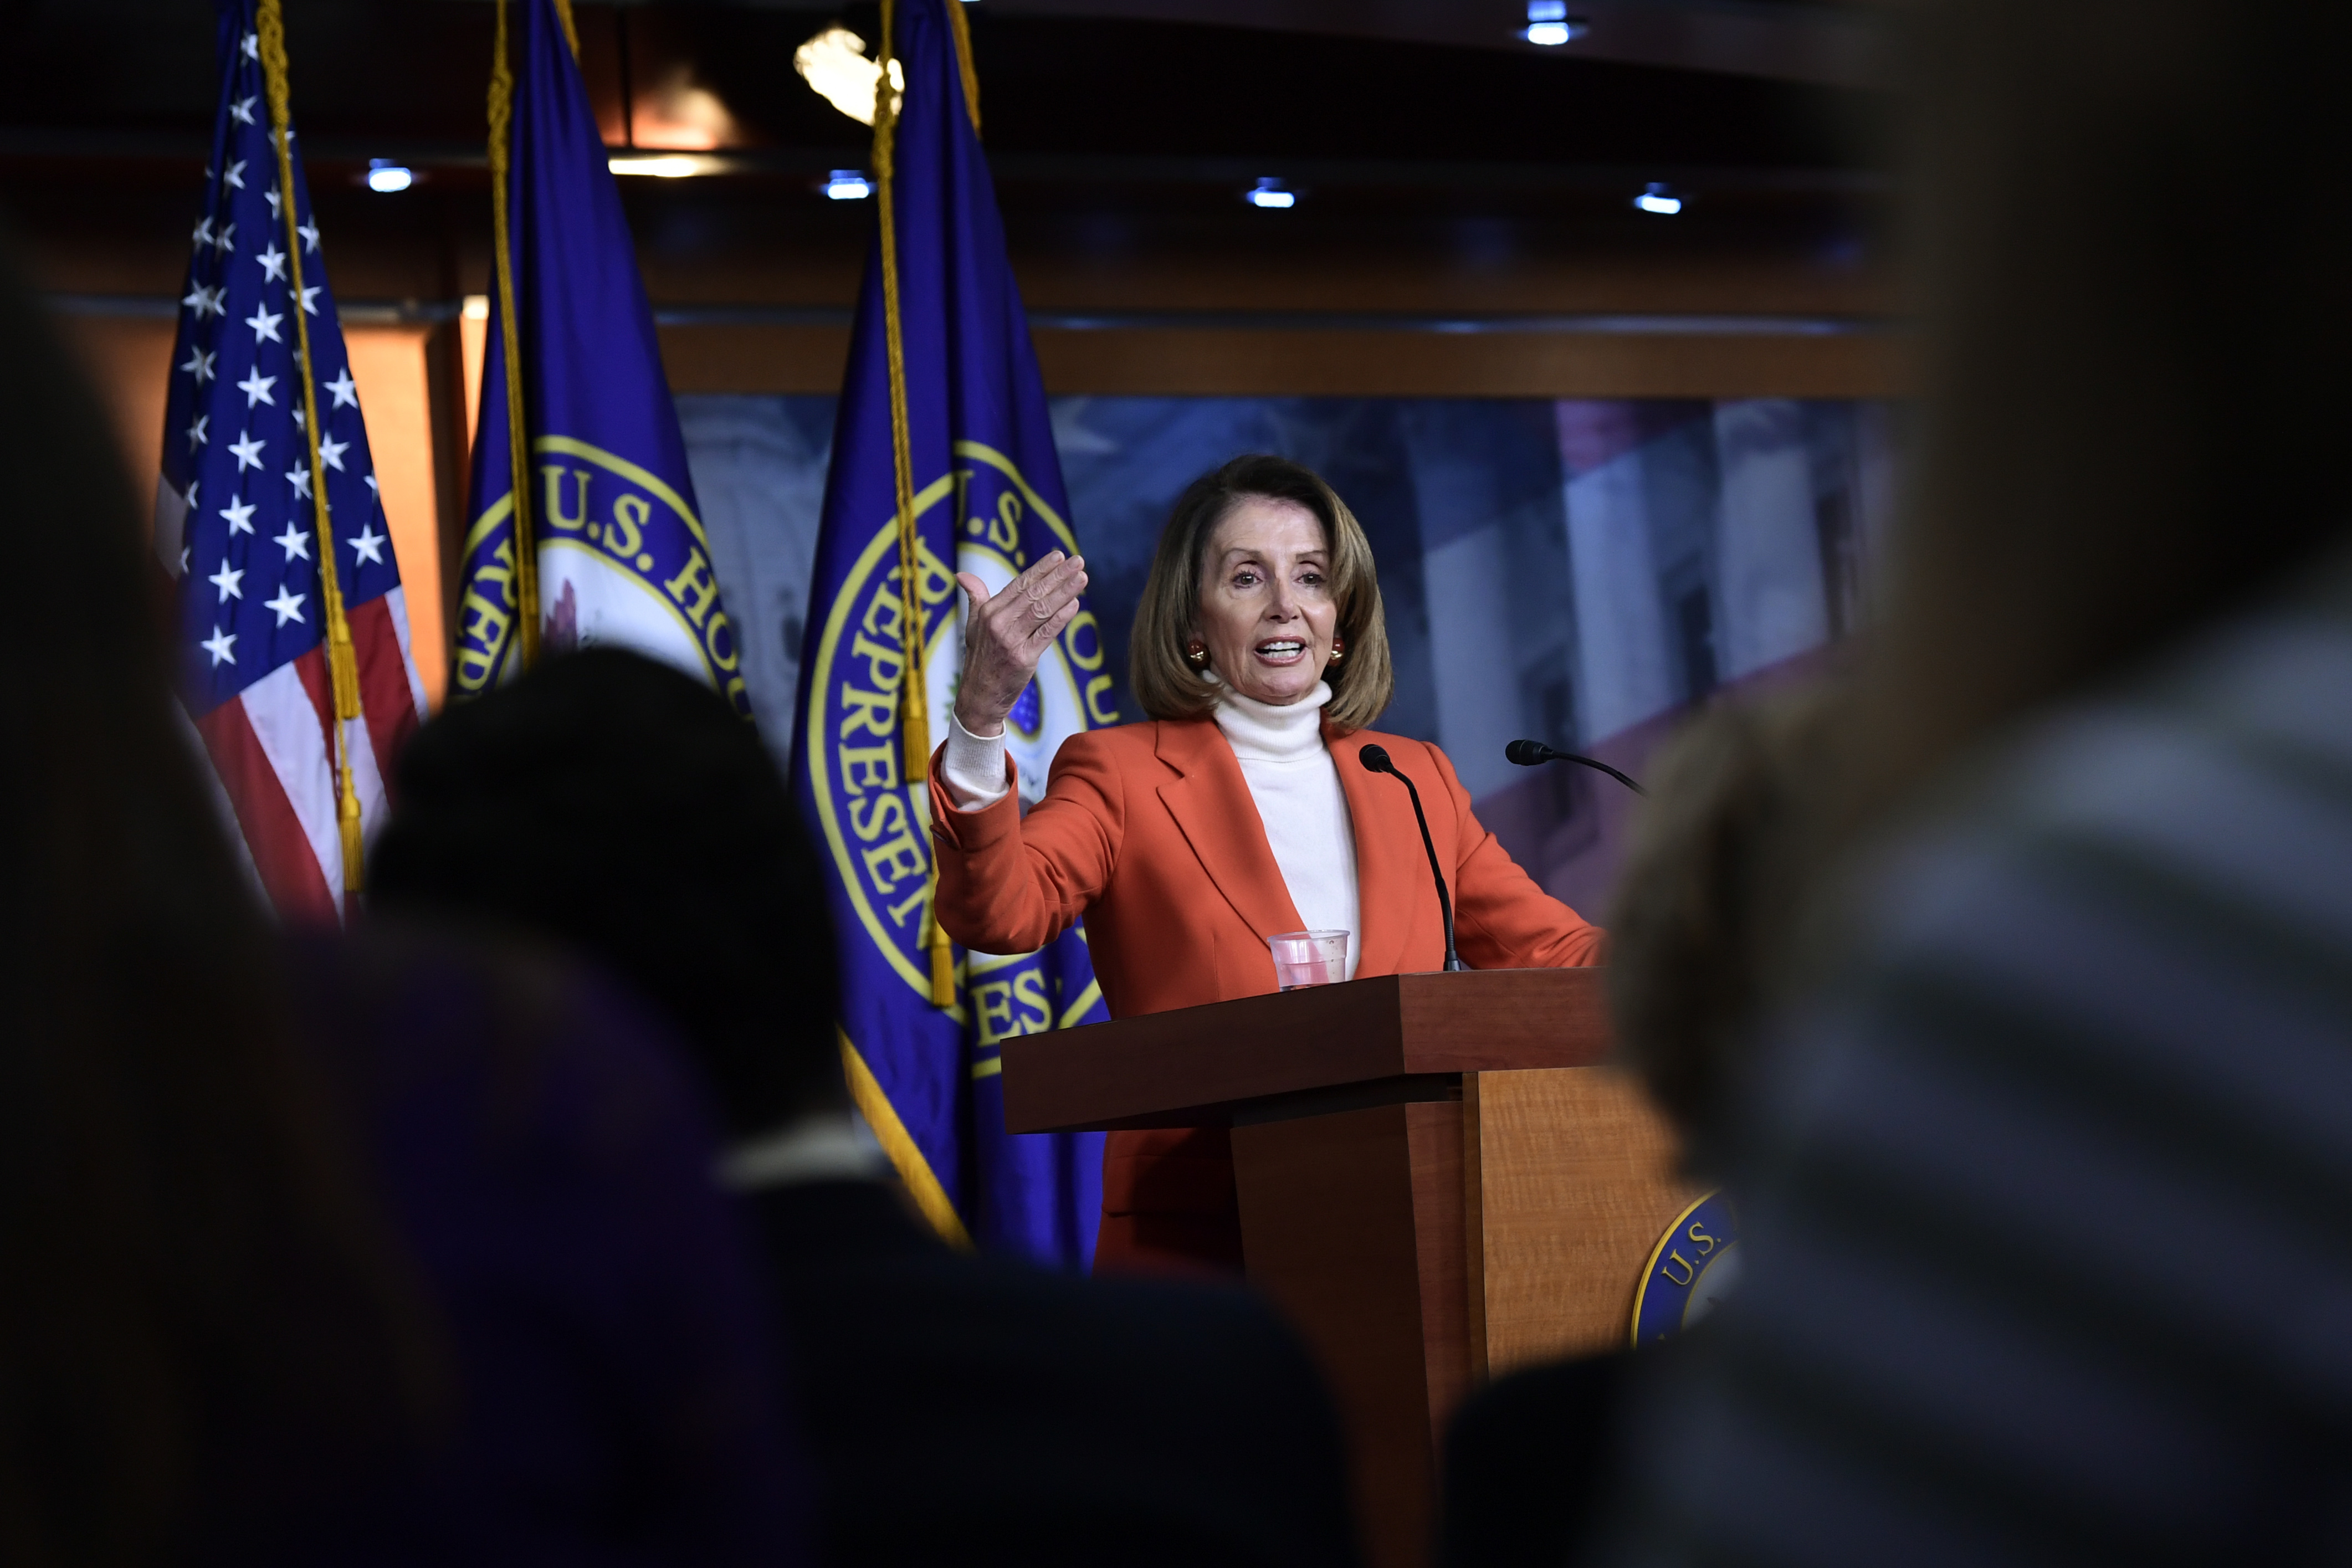 Nancy Pelosi celebrates House win, promises bipartisanship forecasting